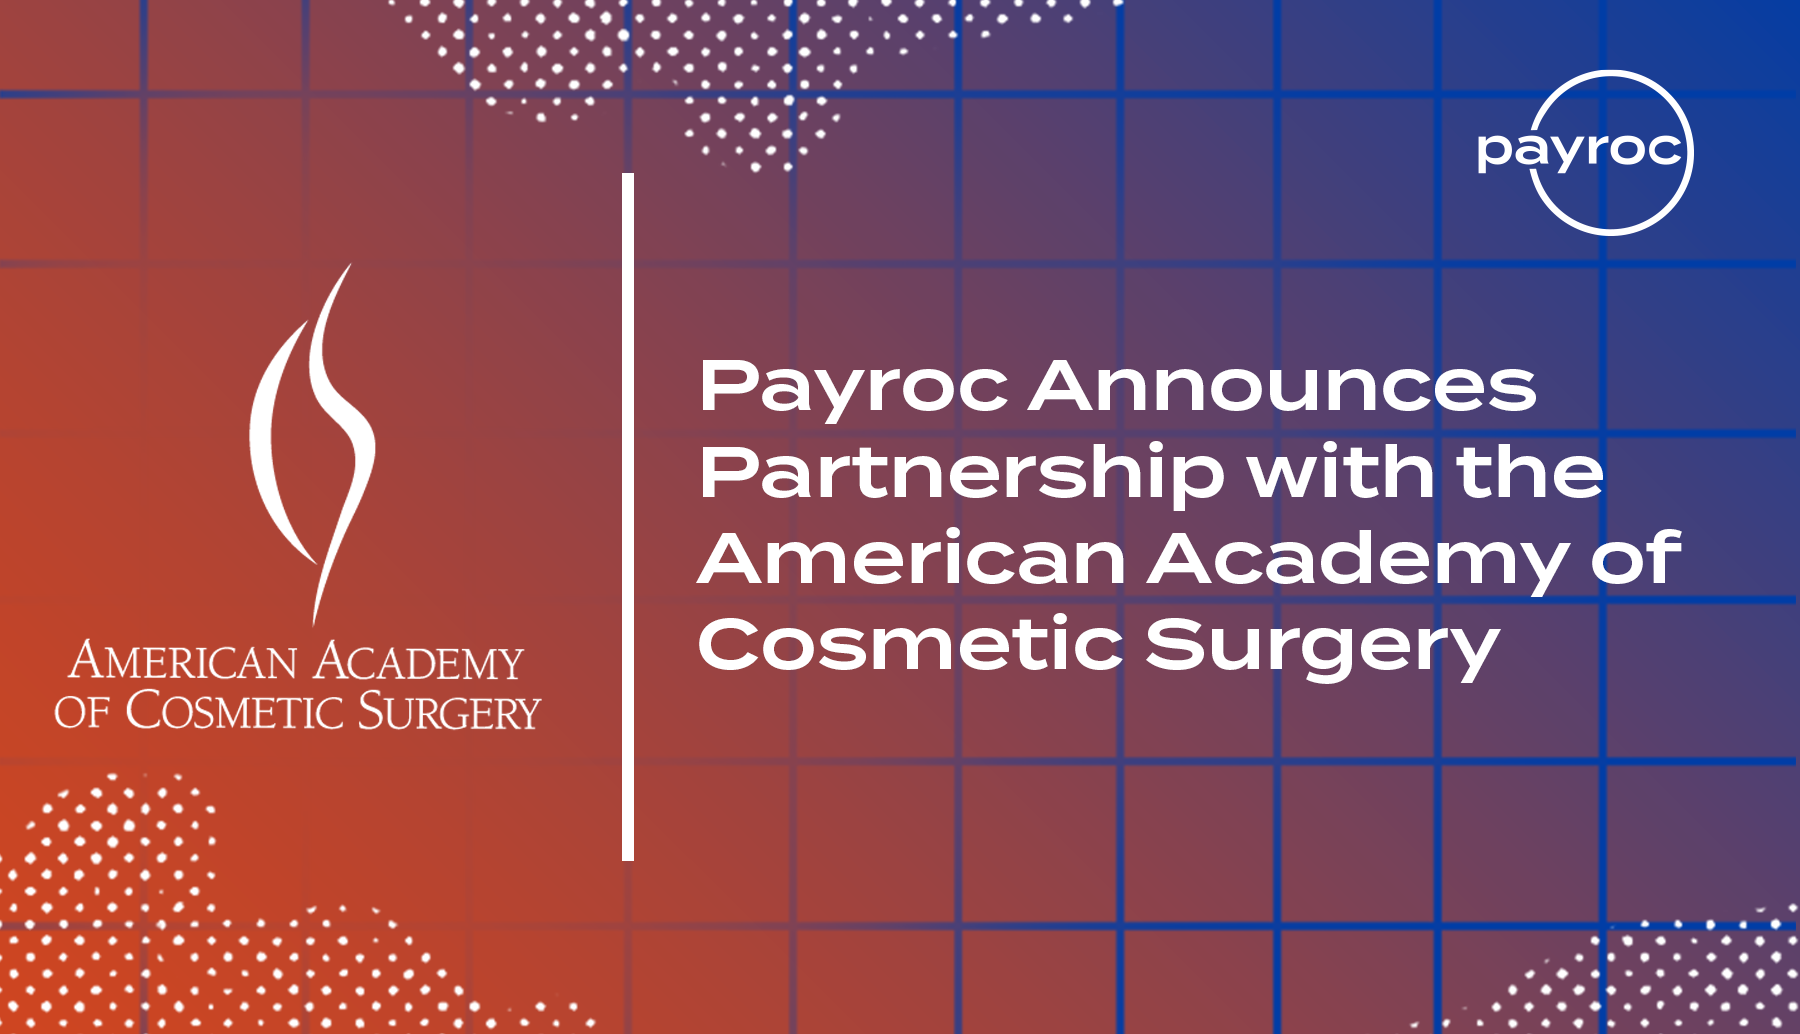 Payroc Announces Partnership with the American Academy of Cosmetic Surgery